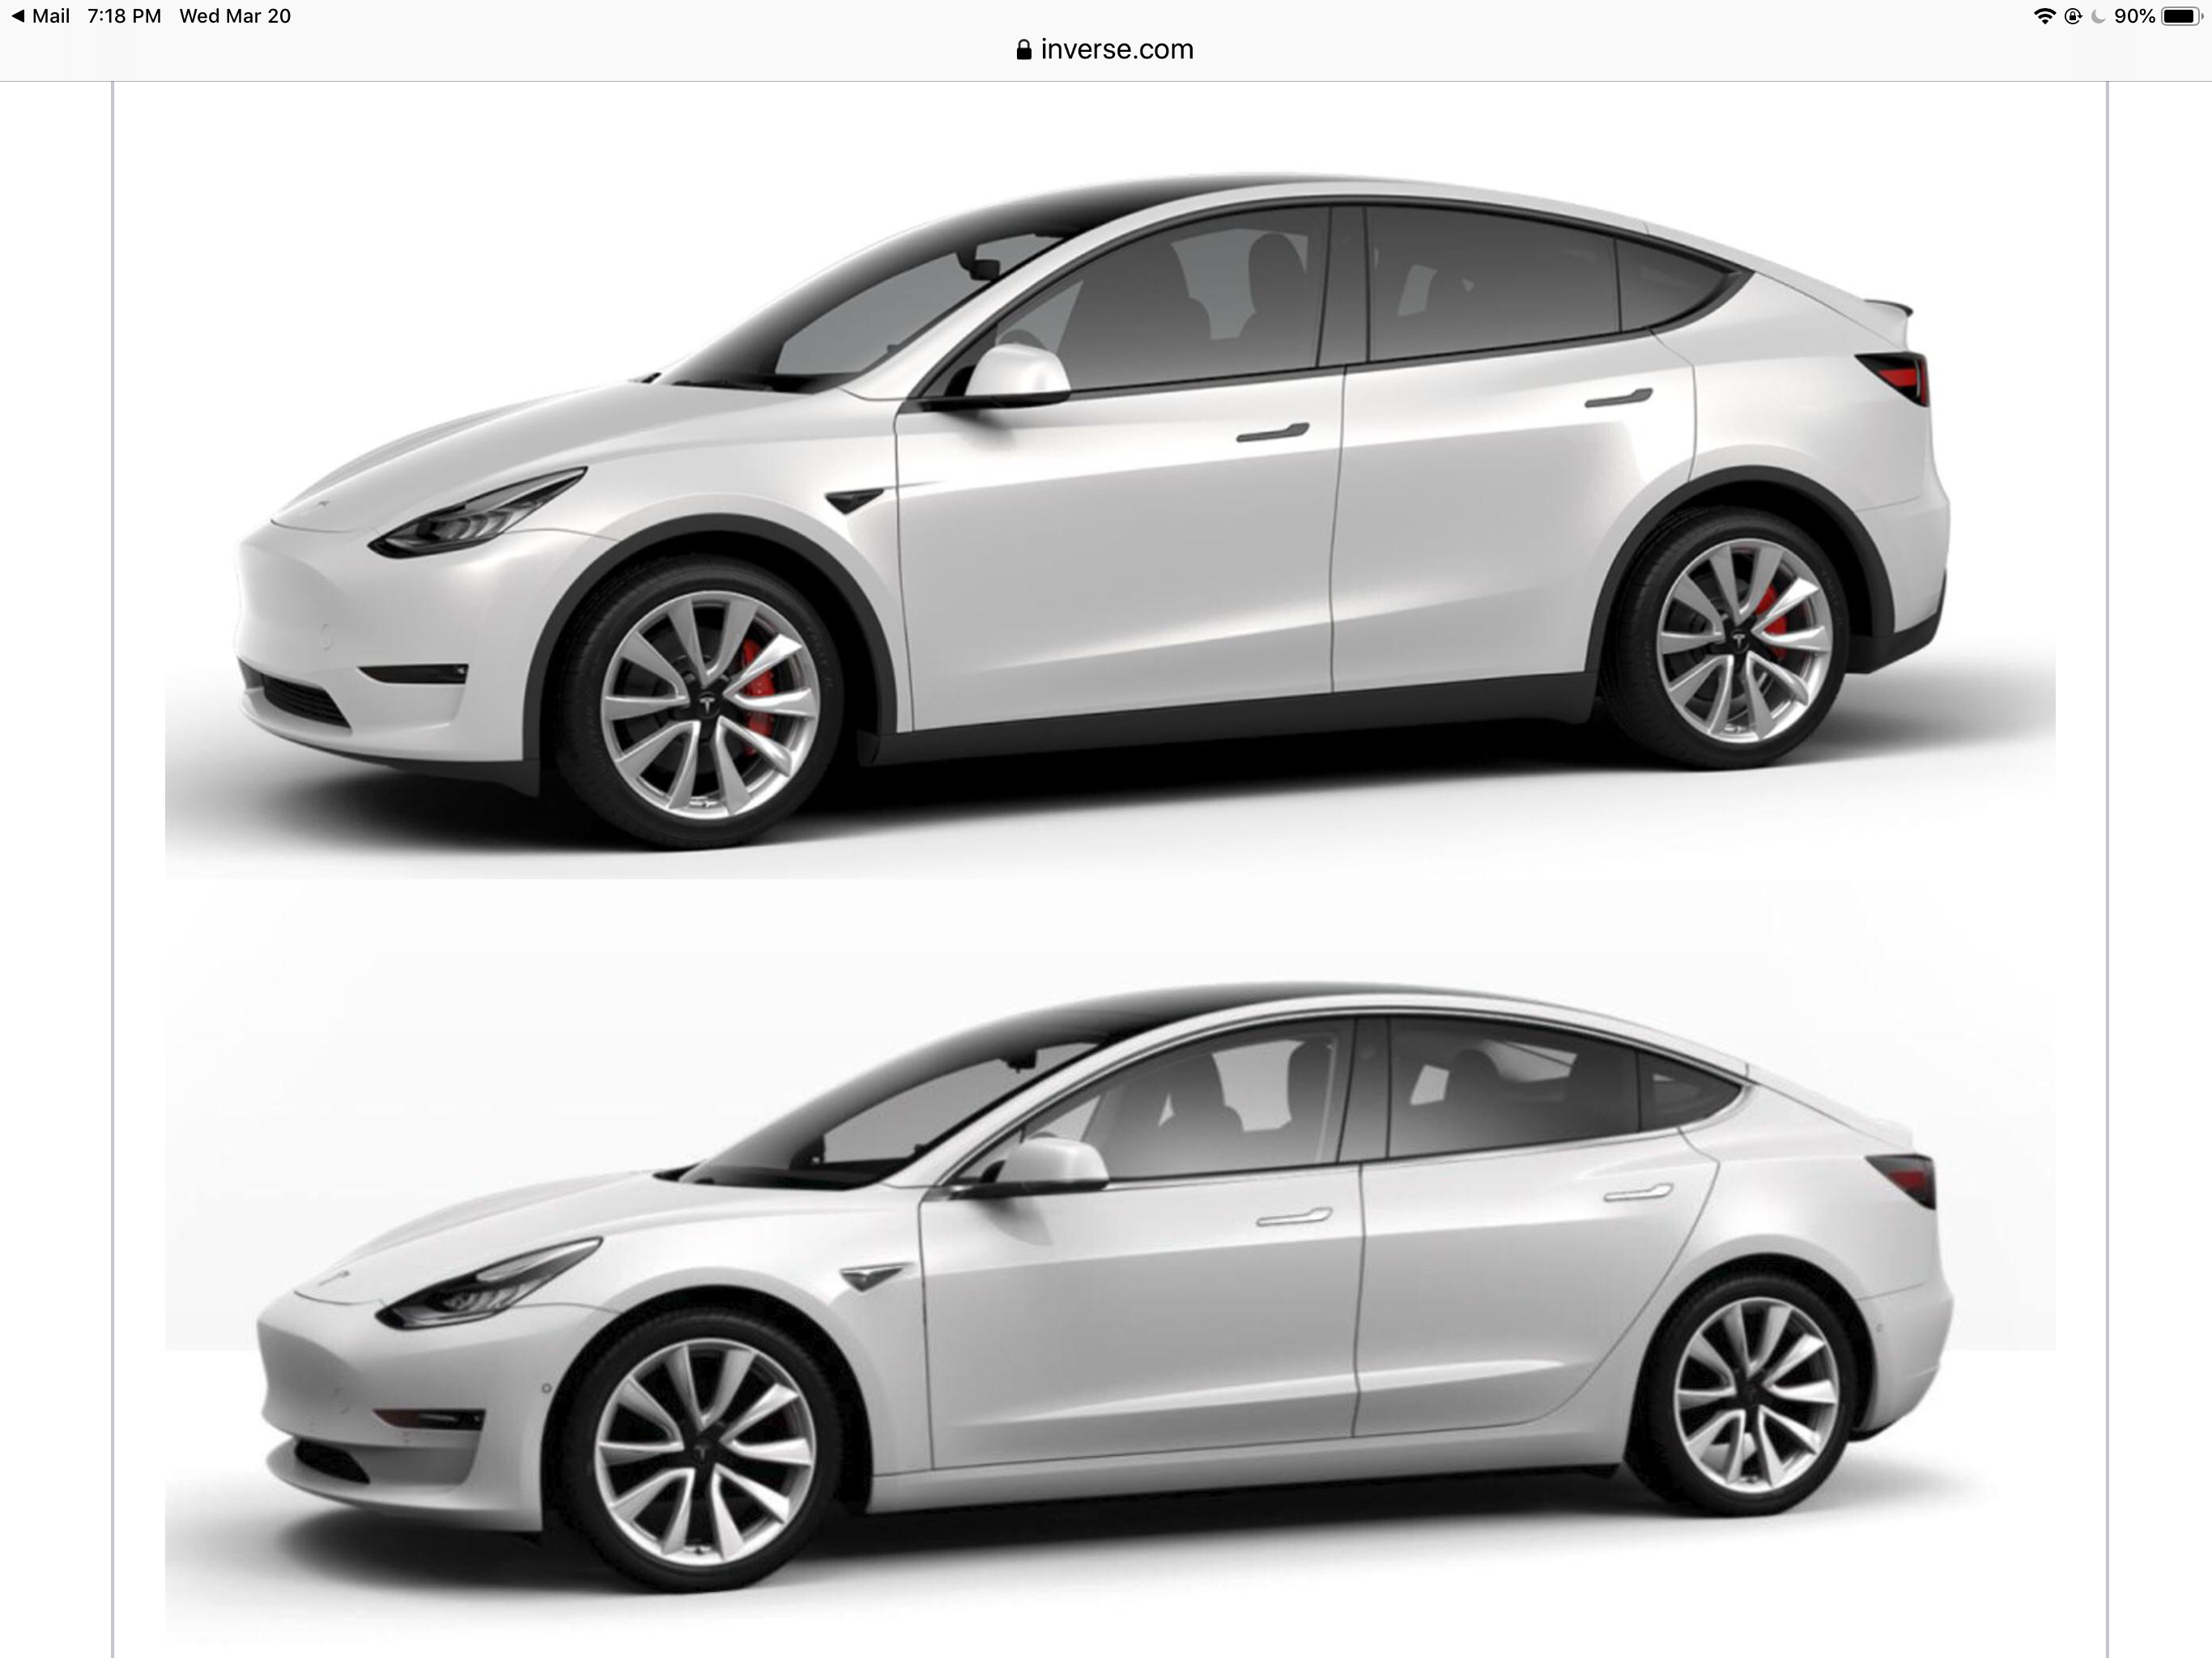 Tesla Model 3 And Model Y Side By Side Tesla Car Tesla Model S